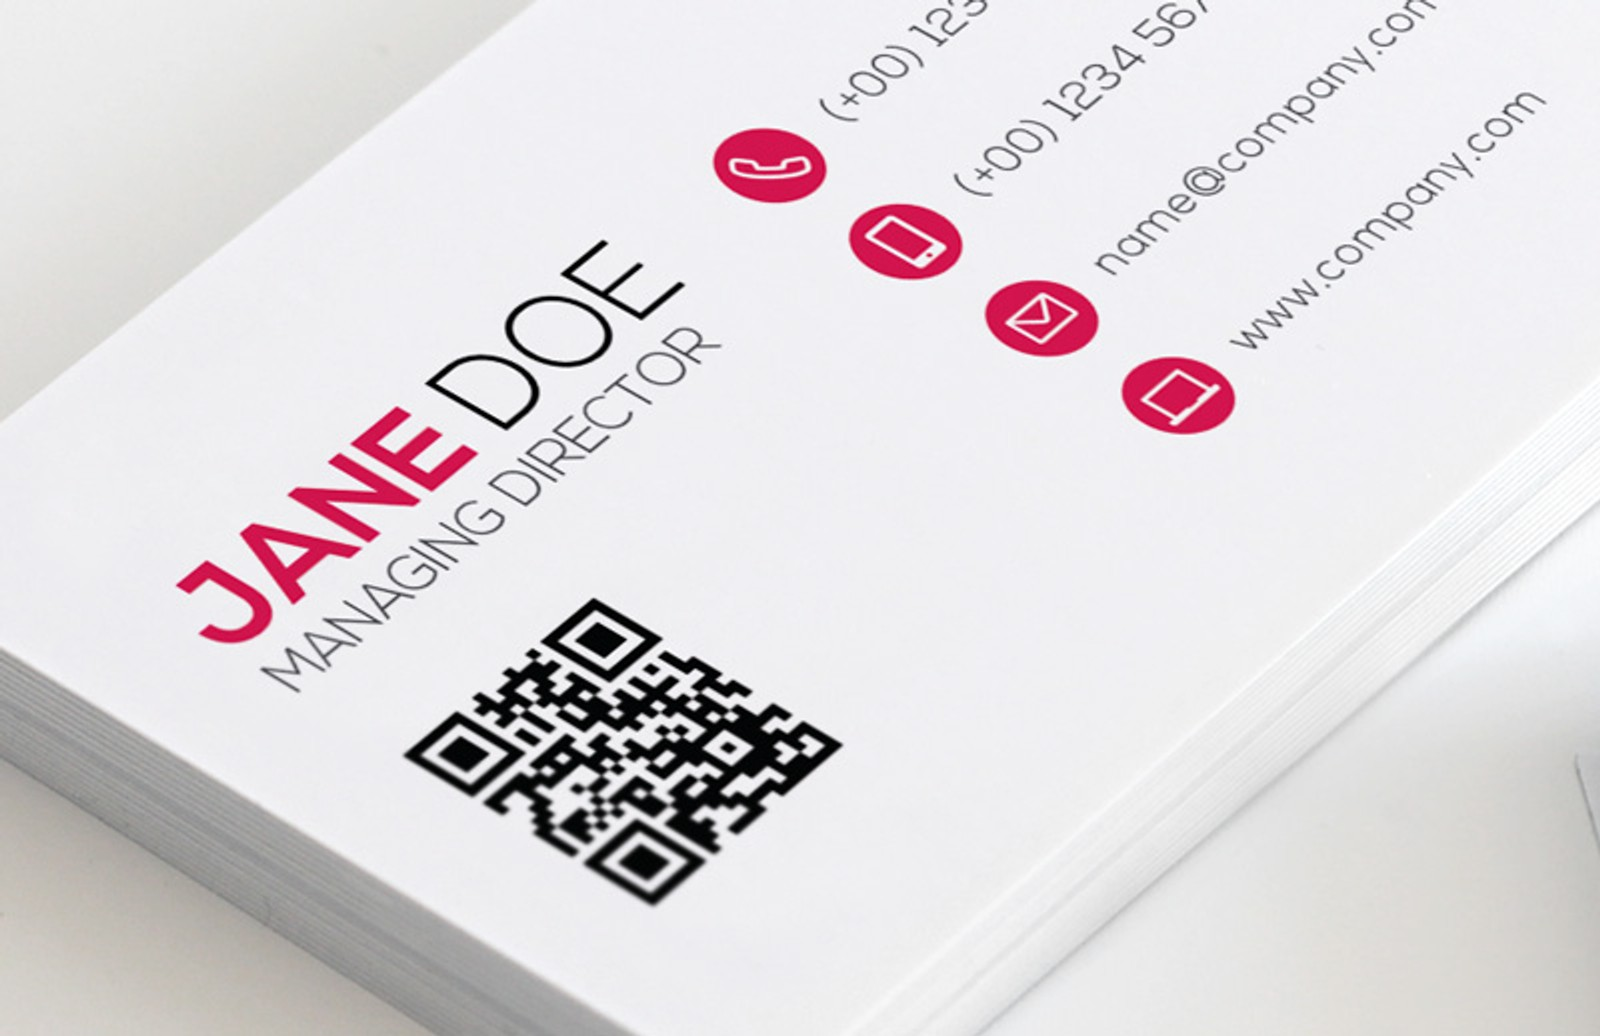 Qr code business card template vol 2 medialoot qr code business card vol 2 preview 1 flashek Images